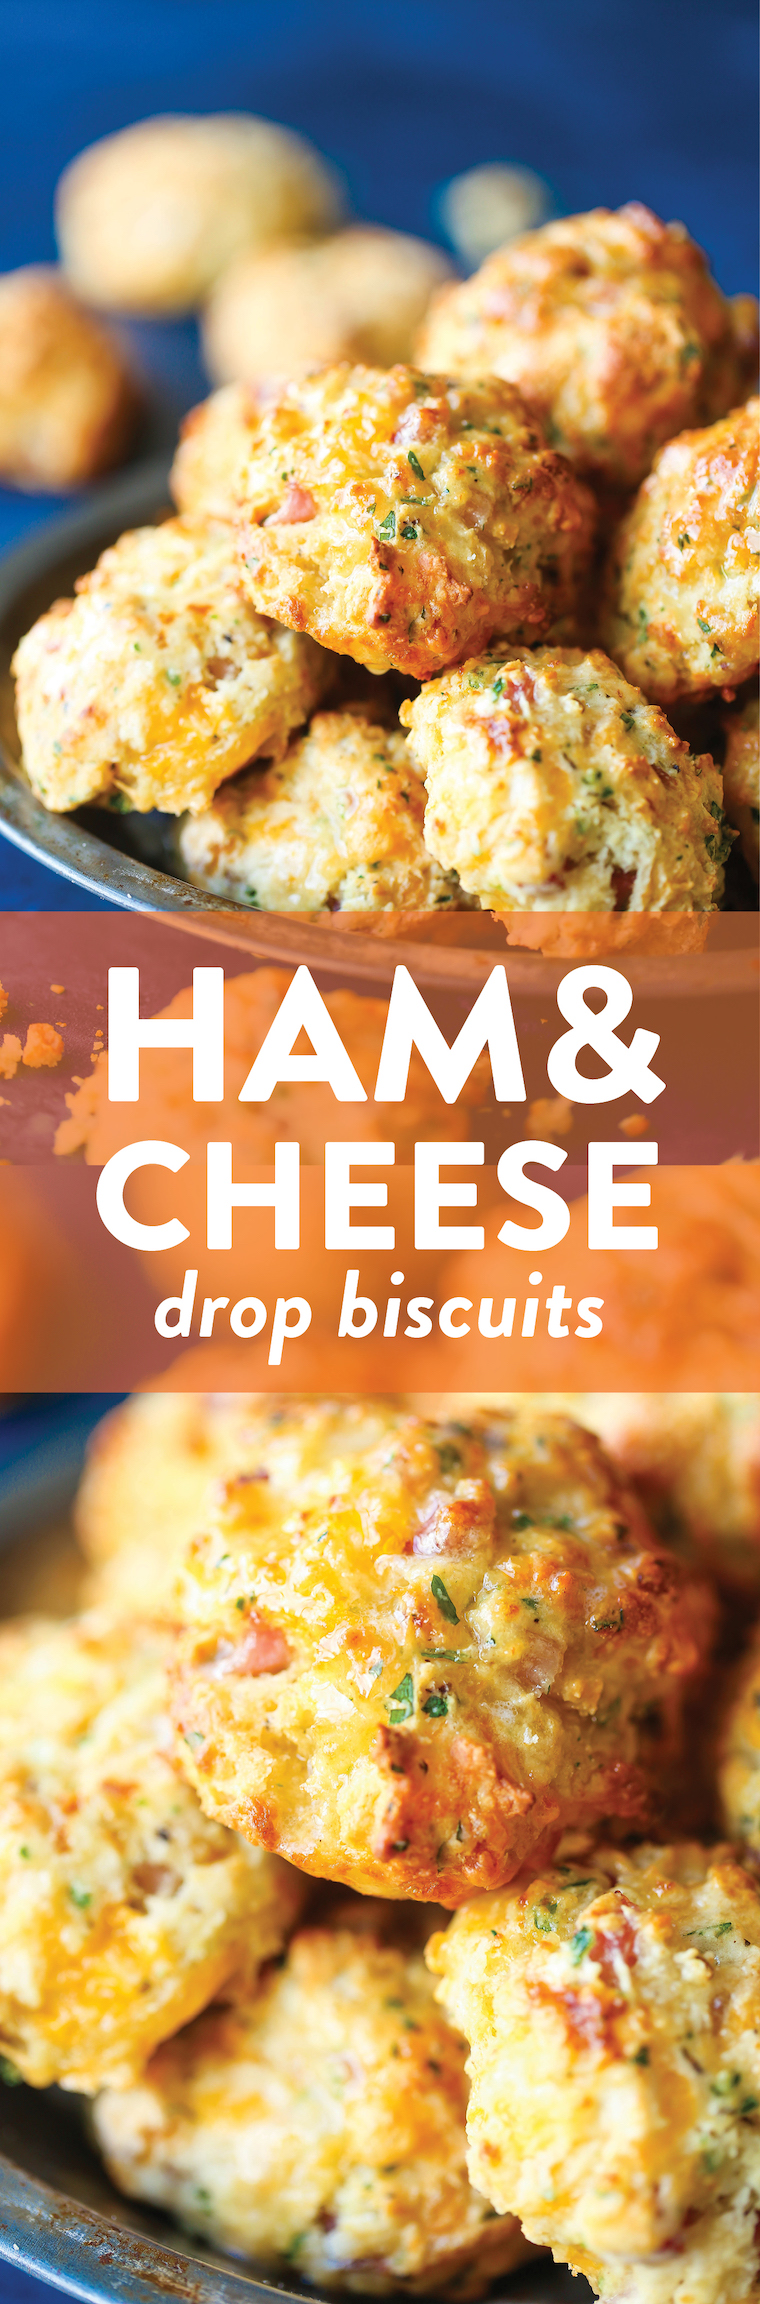 Ham and Cheese Drop Biscuits - The easiest, simplest homemade drop biscuits made with less than 20min prep! And they're so buttery, so flaky and so perfect!